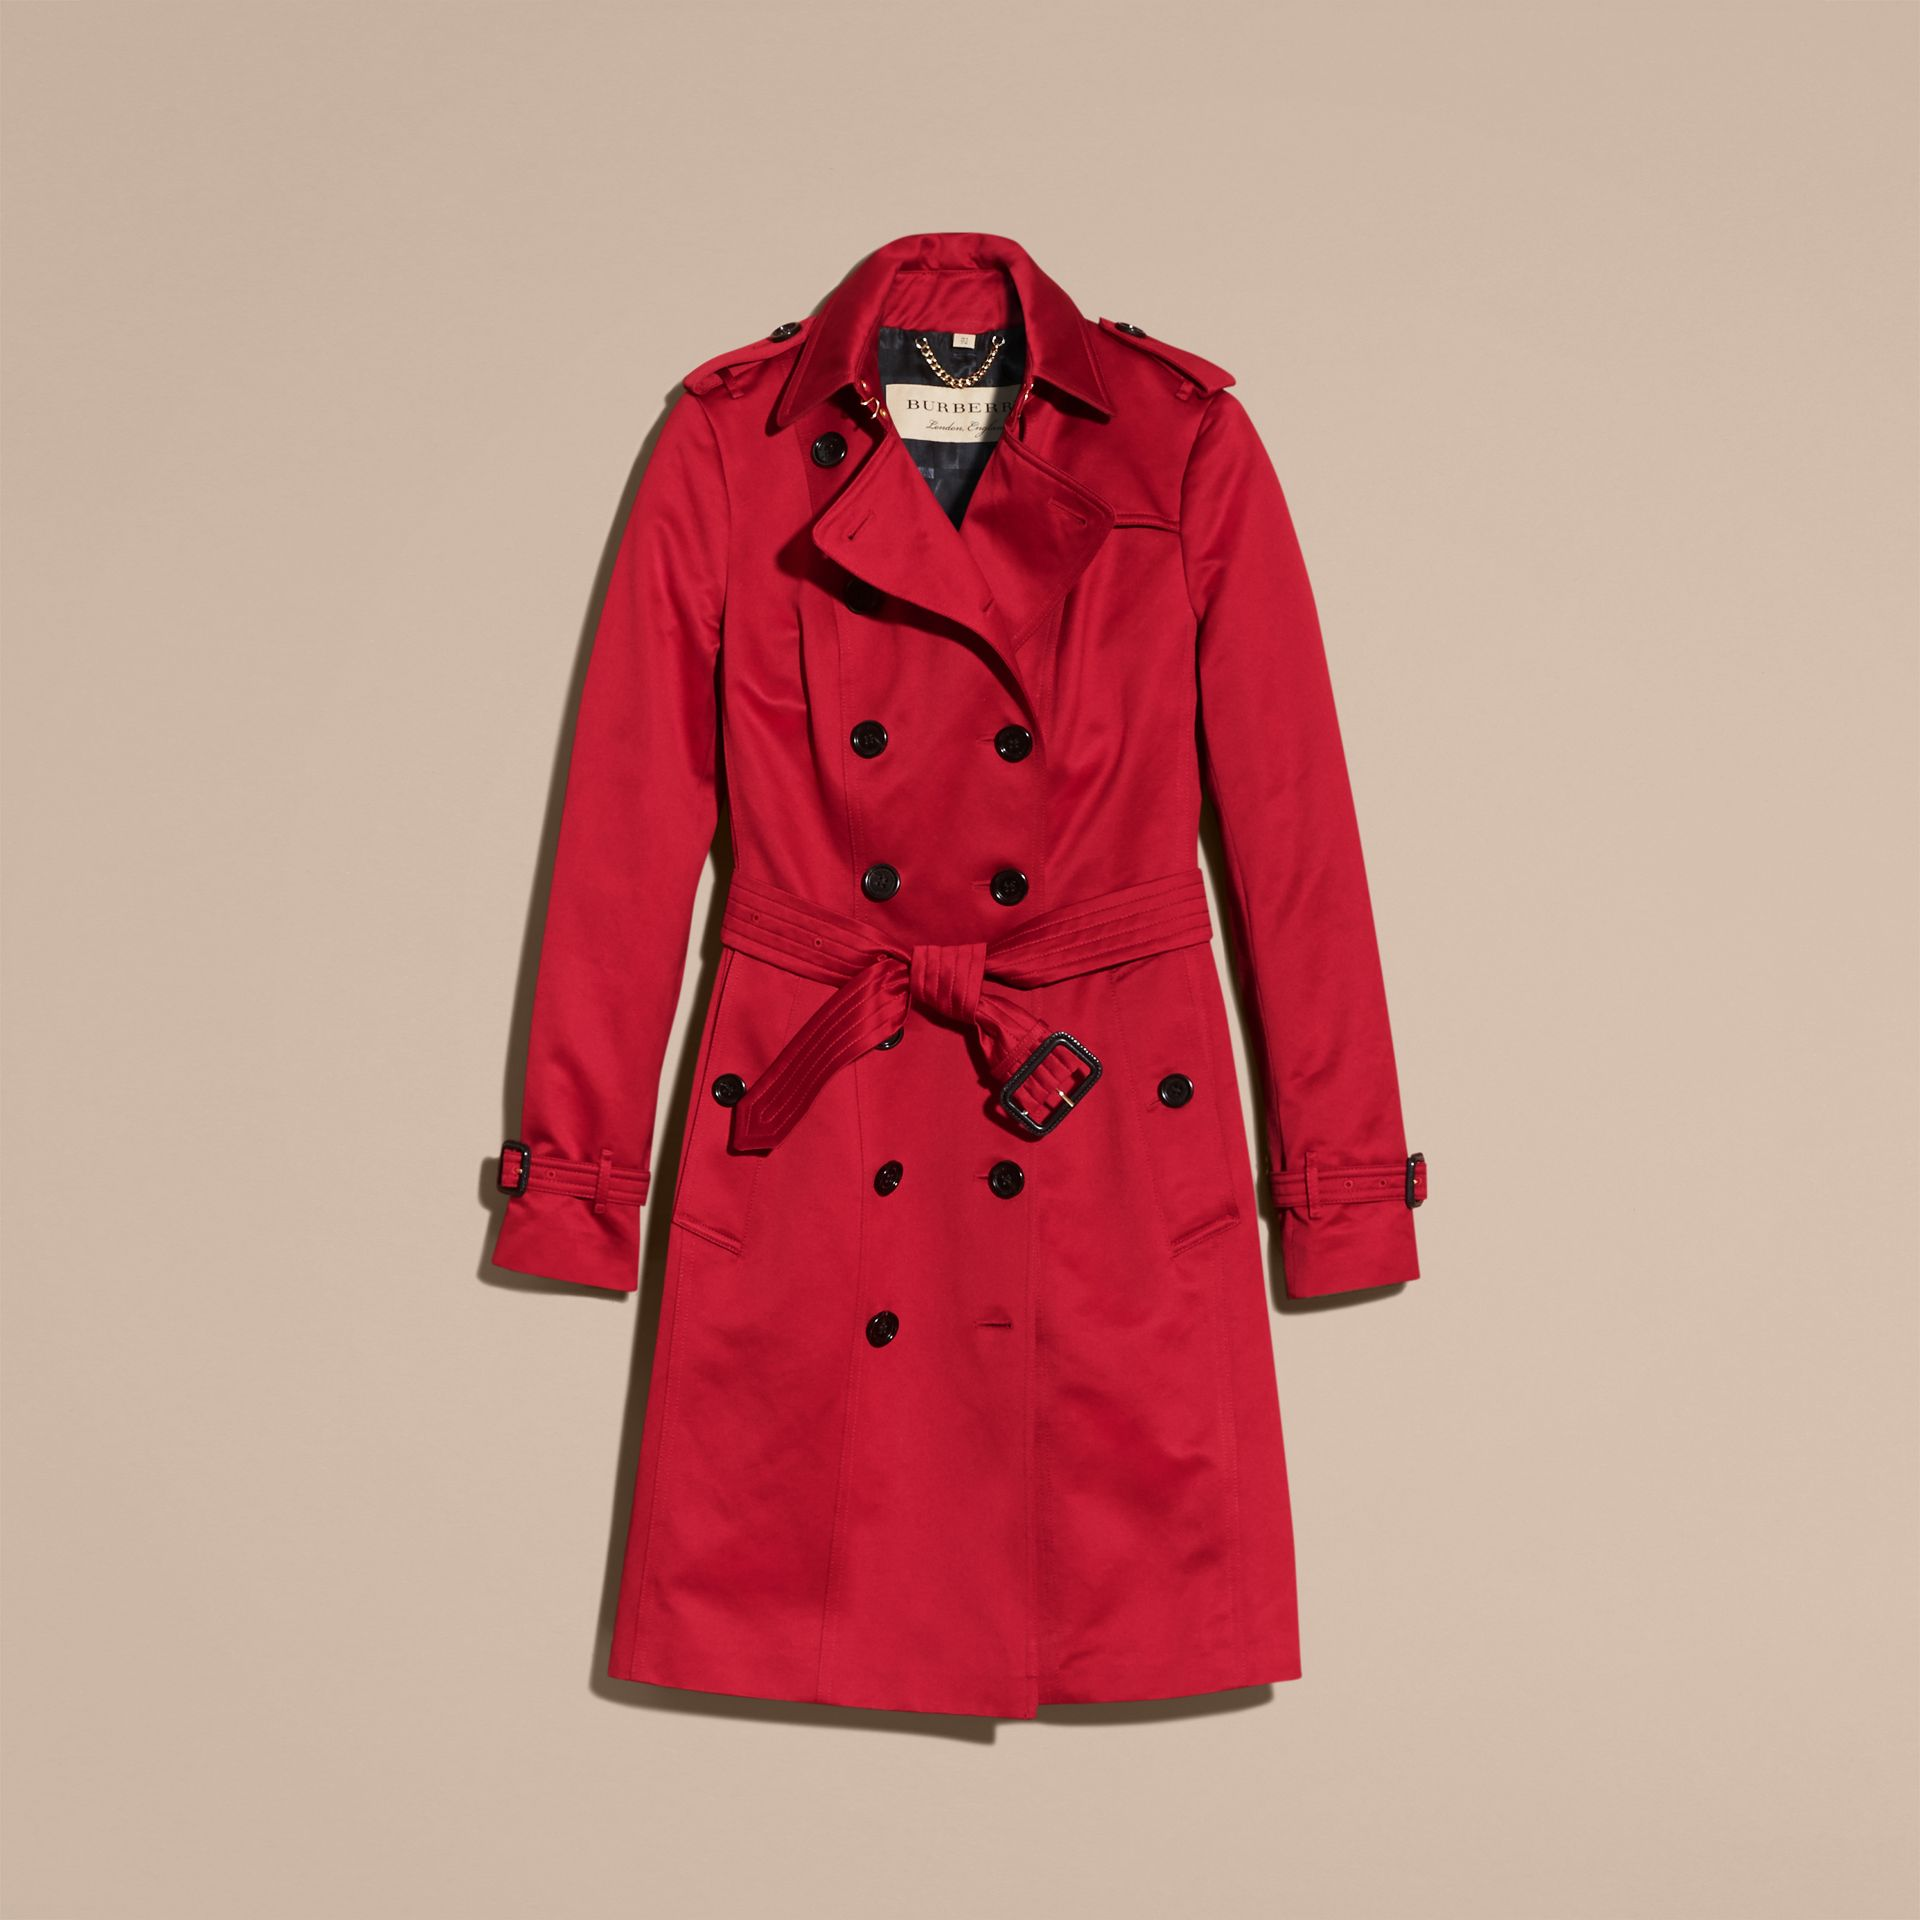 Rouge parade Trench-coat en satin de coton - photo de la galerie 4